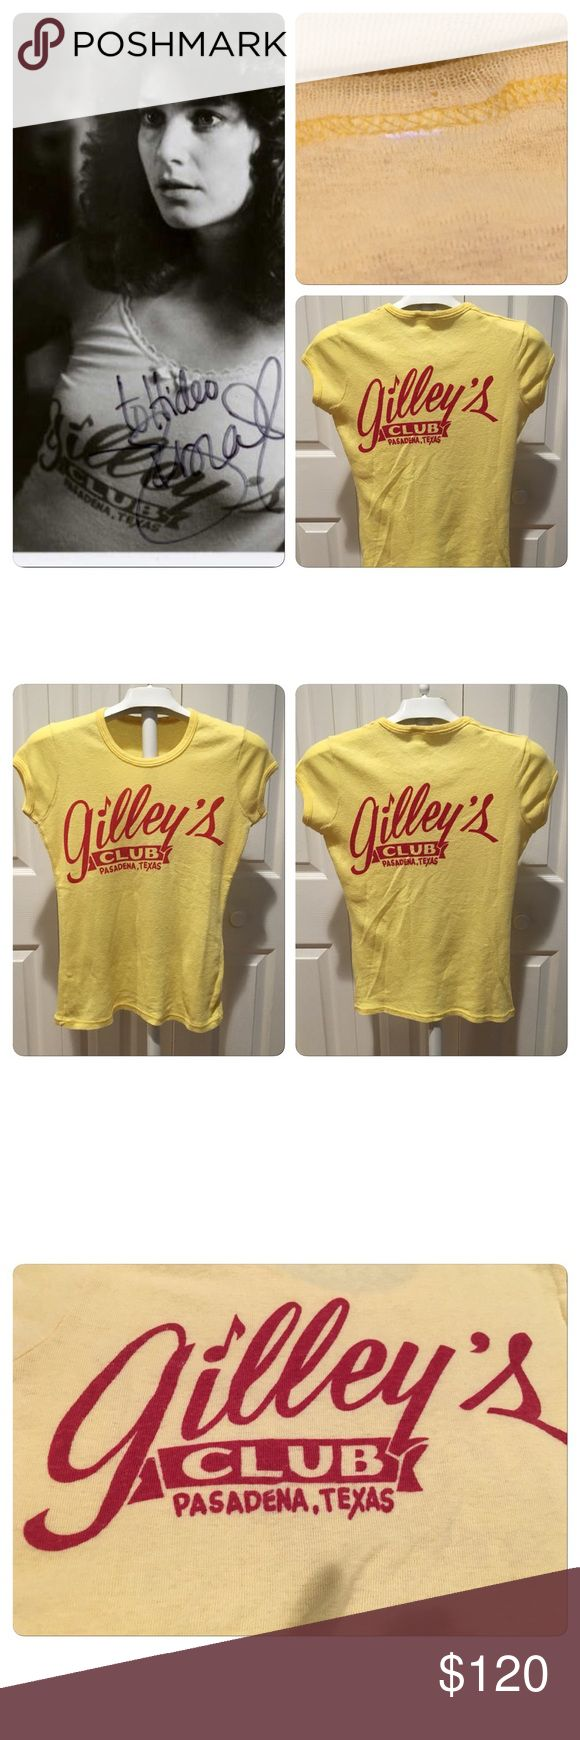 VINTAGE 70s GILLEYS Urban Cowboy Tee Super sweet classic Gilley's tee from Pasadena Texas. Popularized by the film Urban Cowboy, Gilley's was the place to go for the best in classic country music. This tee is the perfect ladies cut in a great apricot color with red lettering. Graphic on front and back. Sweet scoop neck and cap sleeves! Cut Label size small .. double sided print , thin 50-50 Poly cotton yellow tee. No holes stains rips or tears. Vintage Tops Tees - Short Sleeve